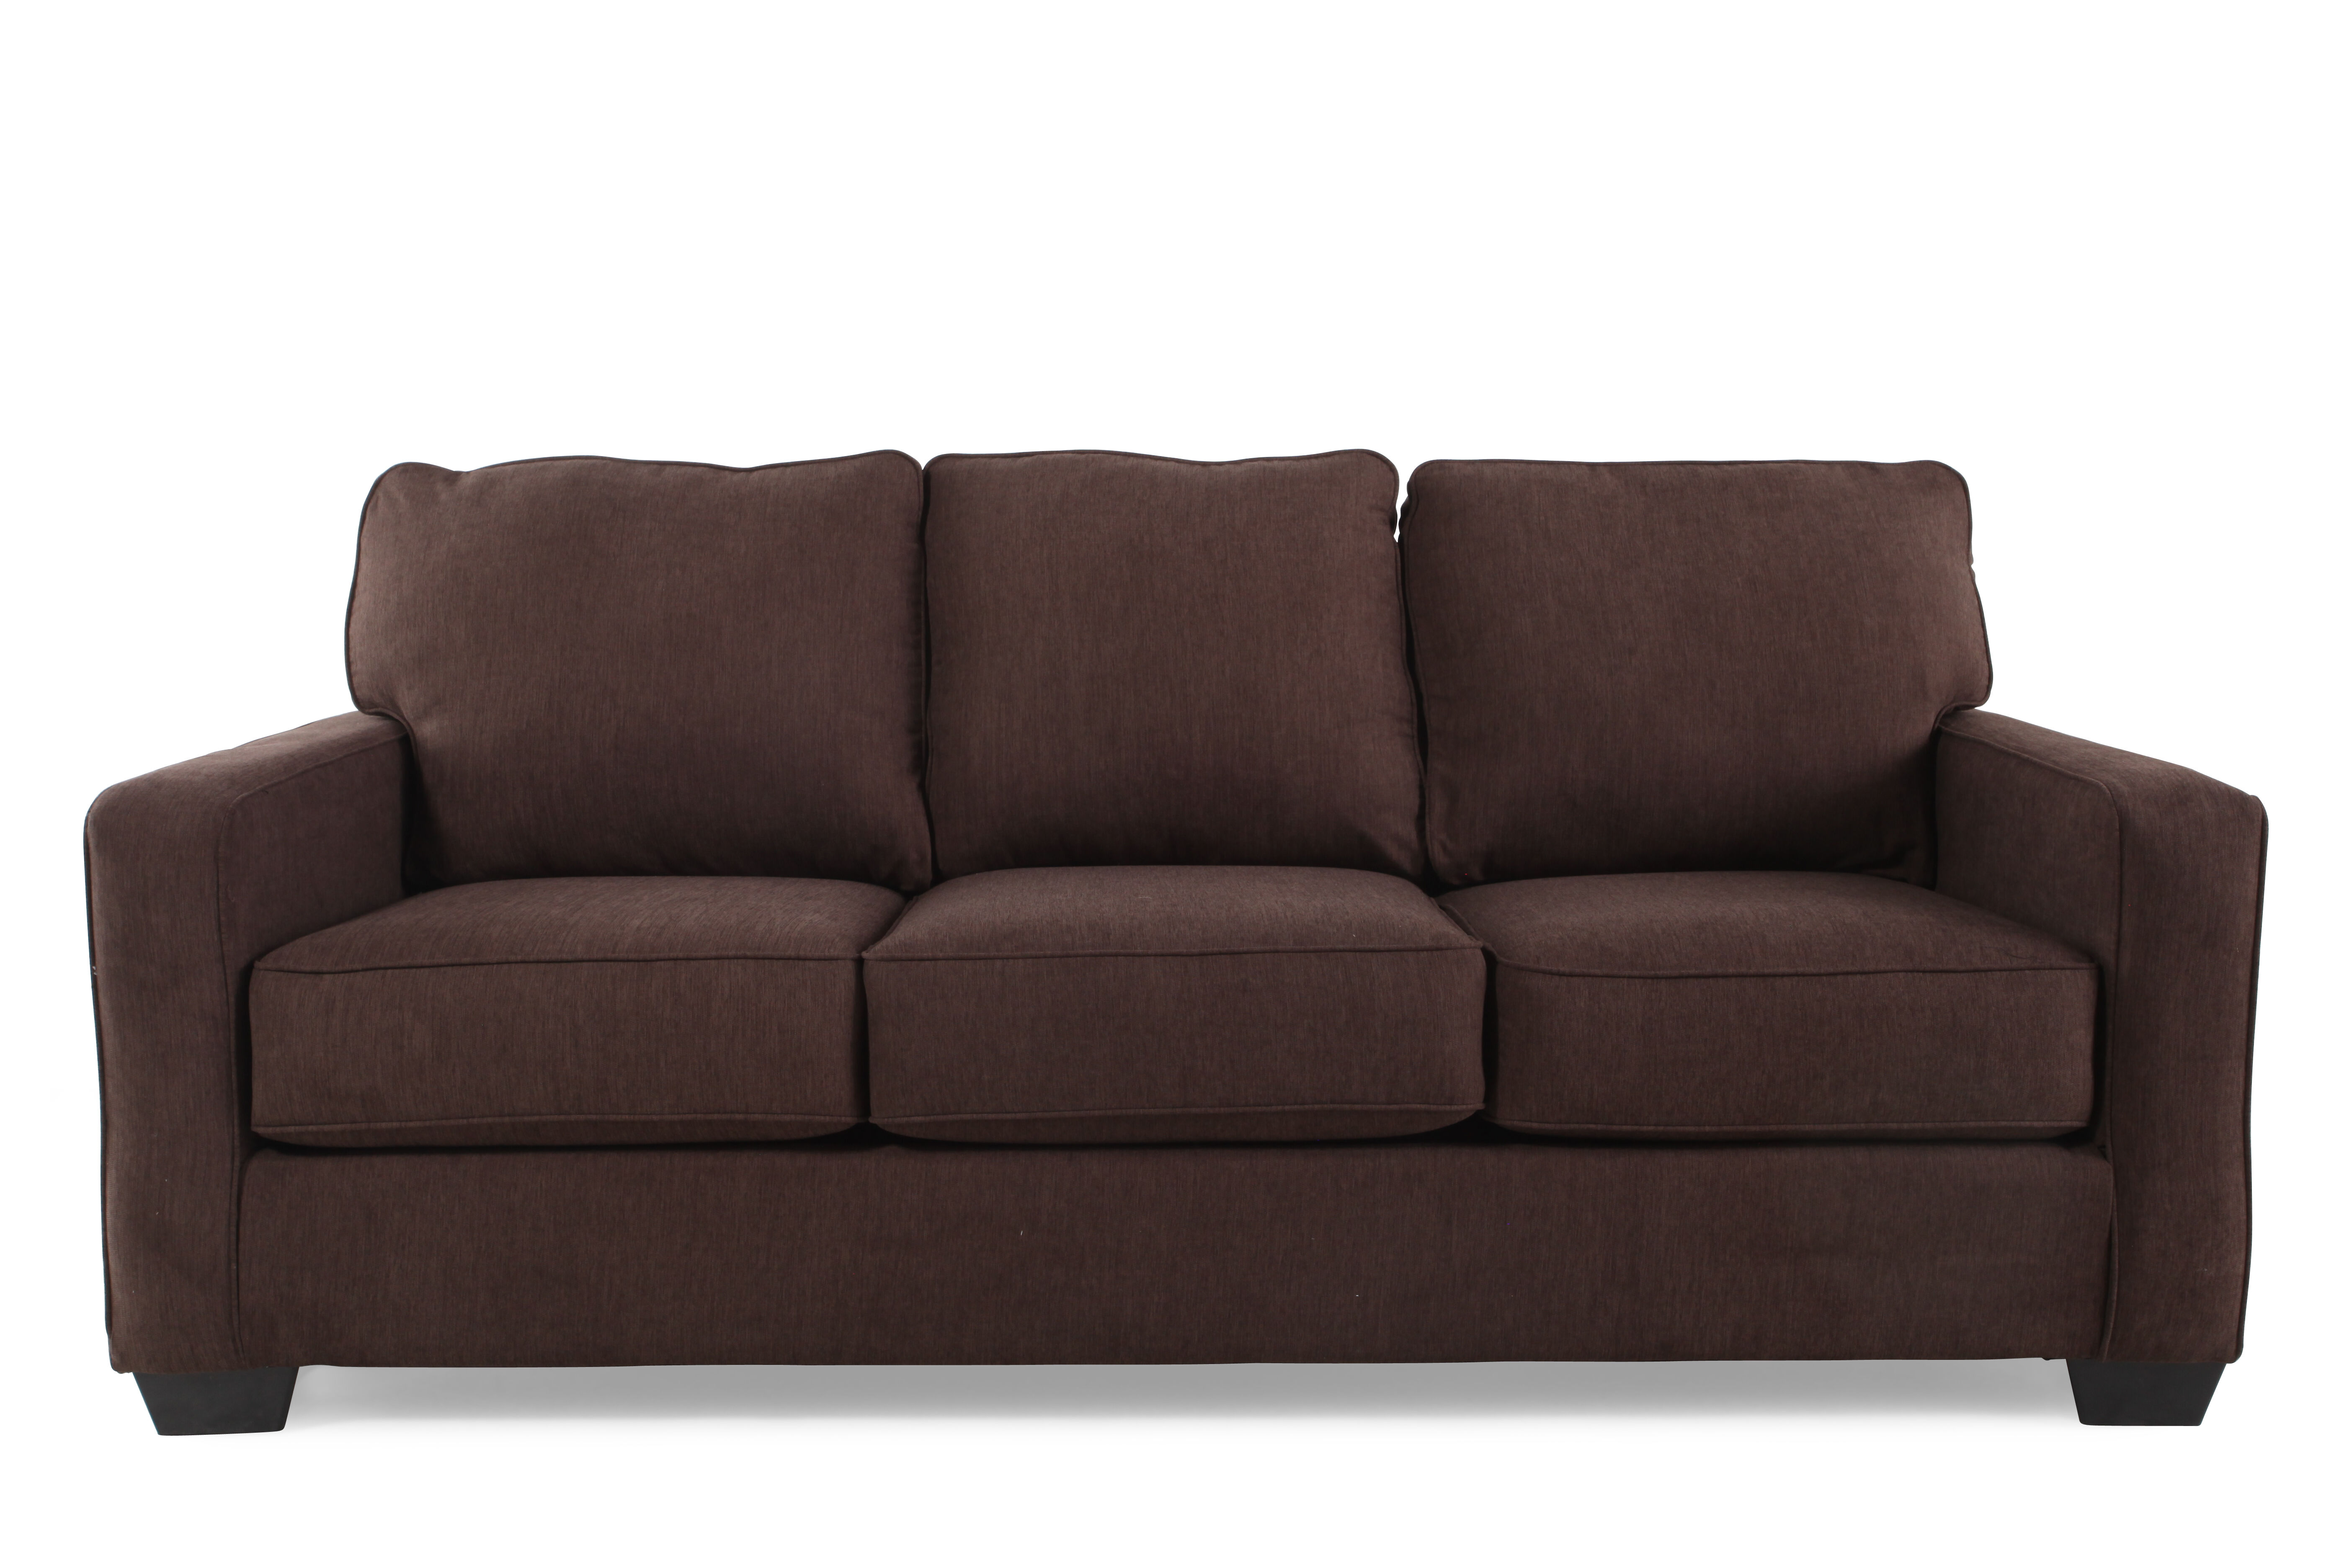 Contemporary 82 Queen Sleeper Sofa in Espresso  Mathis Brothers Furniture